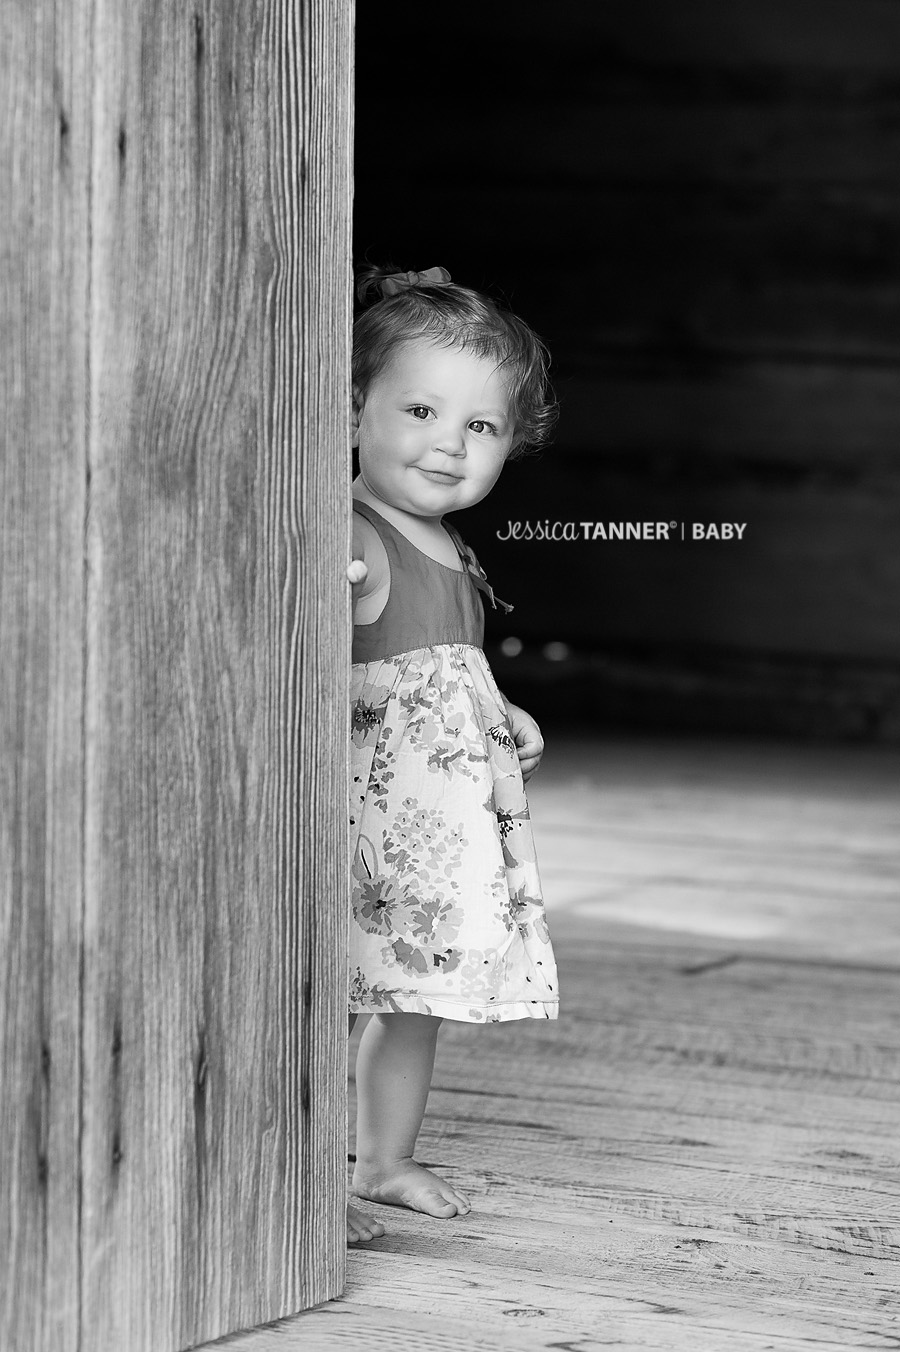 Jefferson Ga Baby Photographer